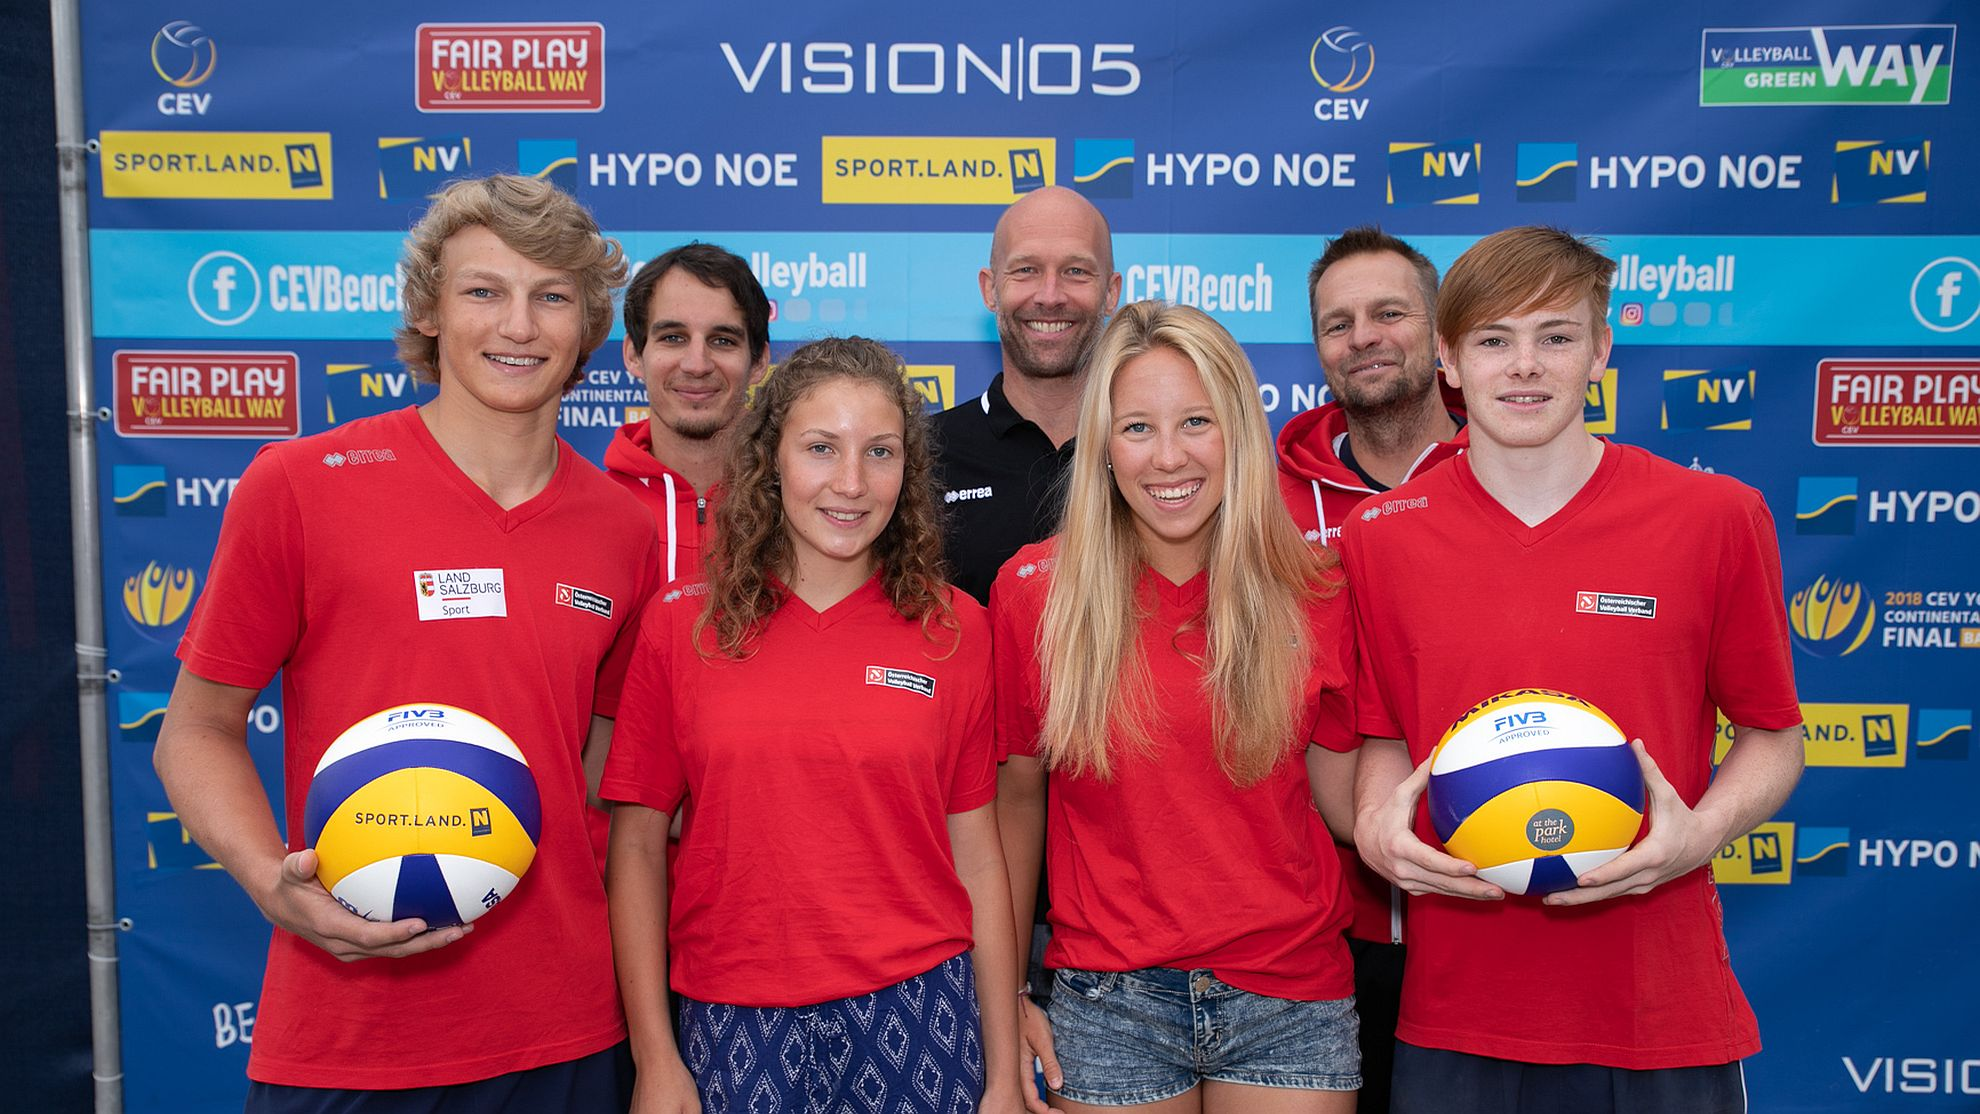 CEV Youth Cup Final - FOTO © ALEX FELTEN